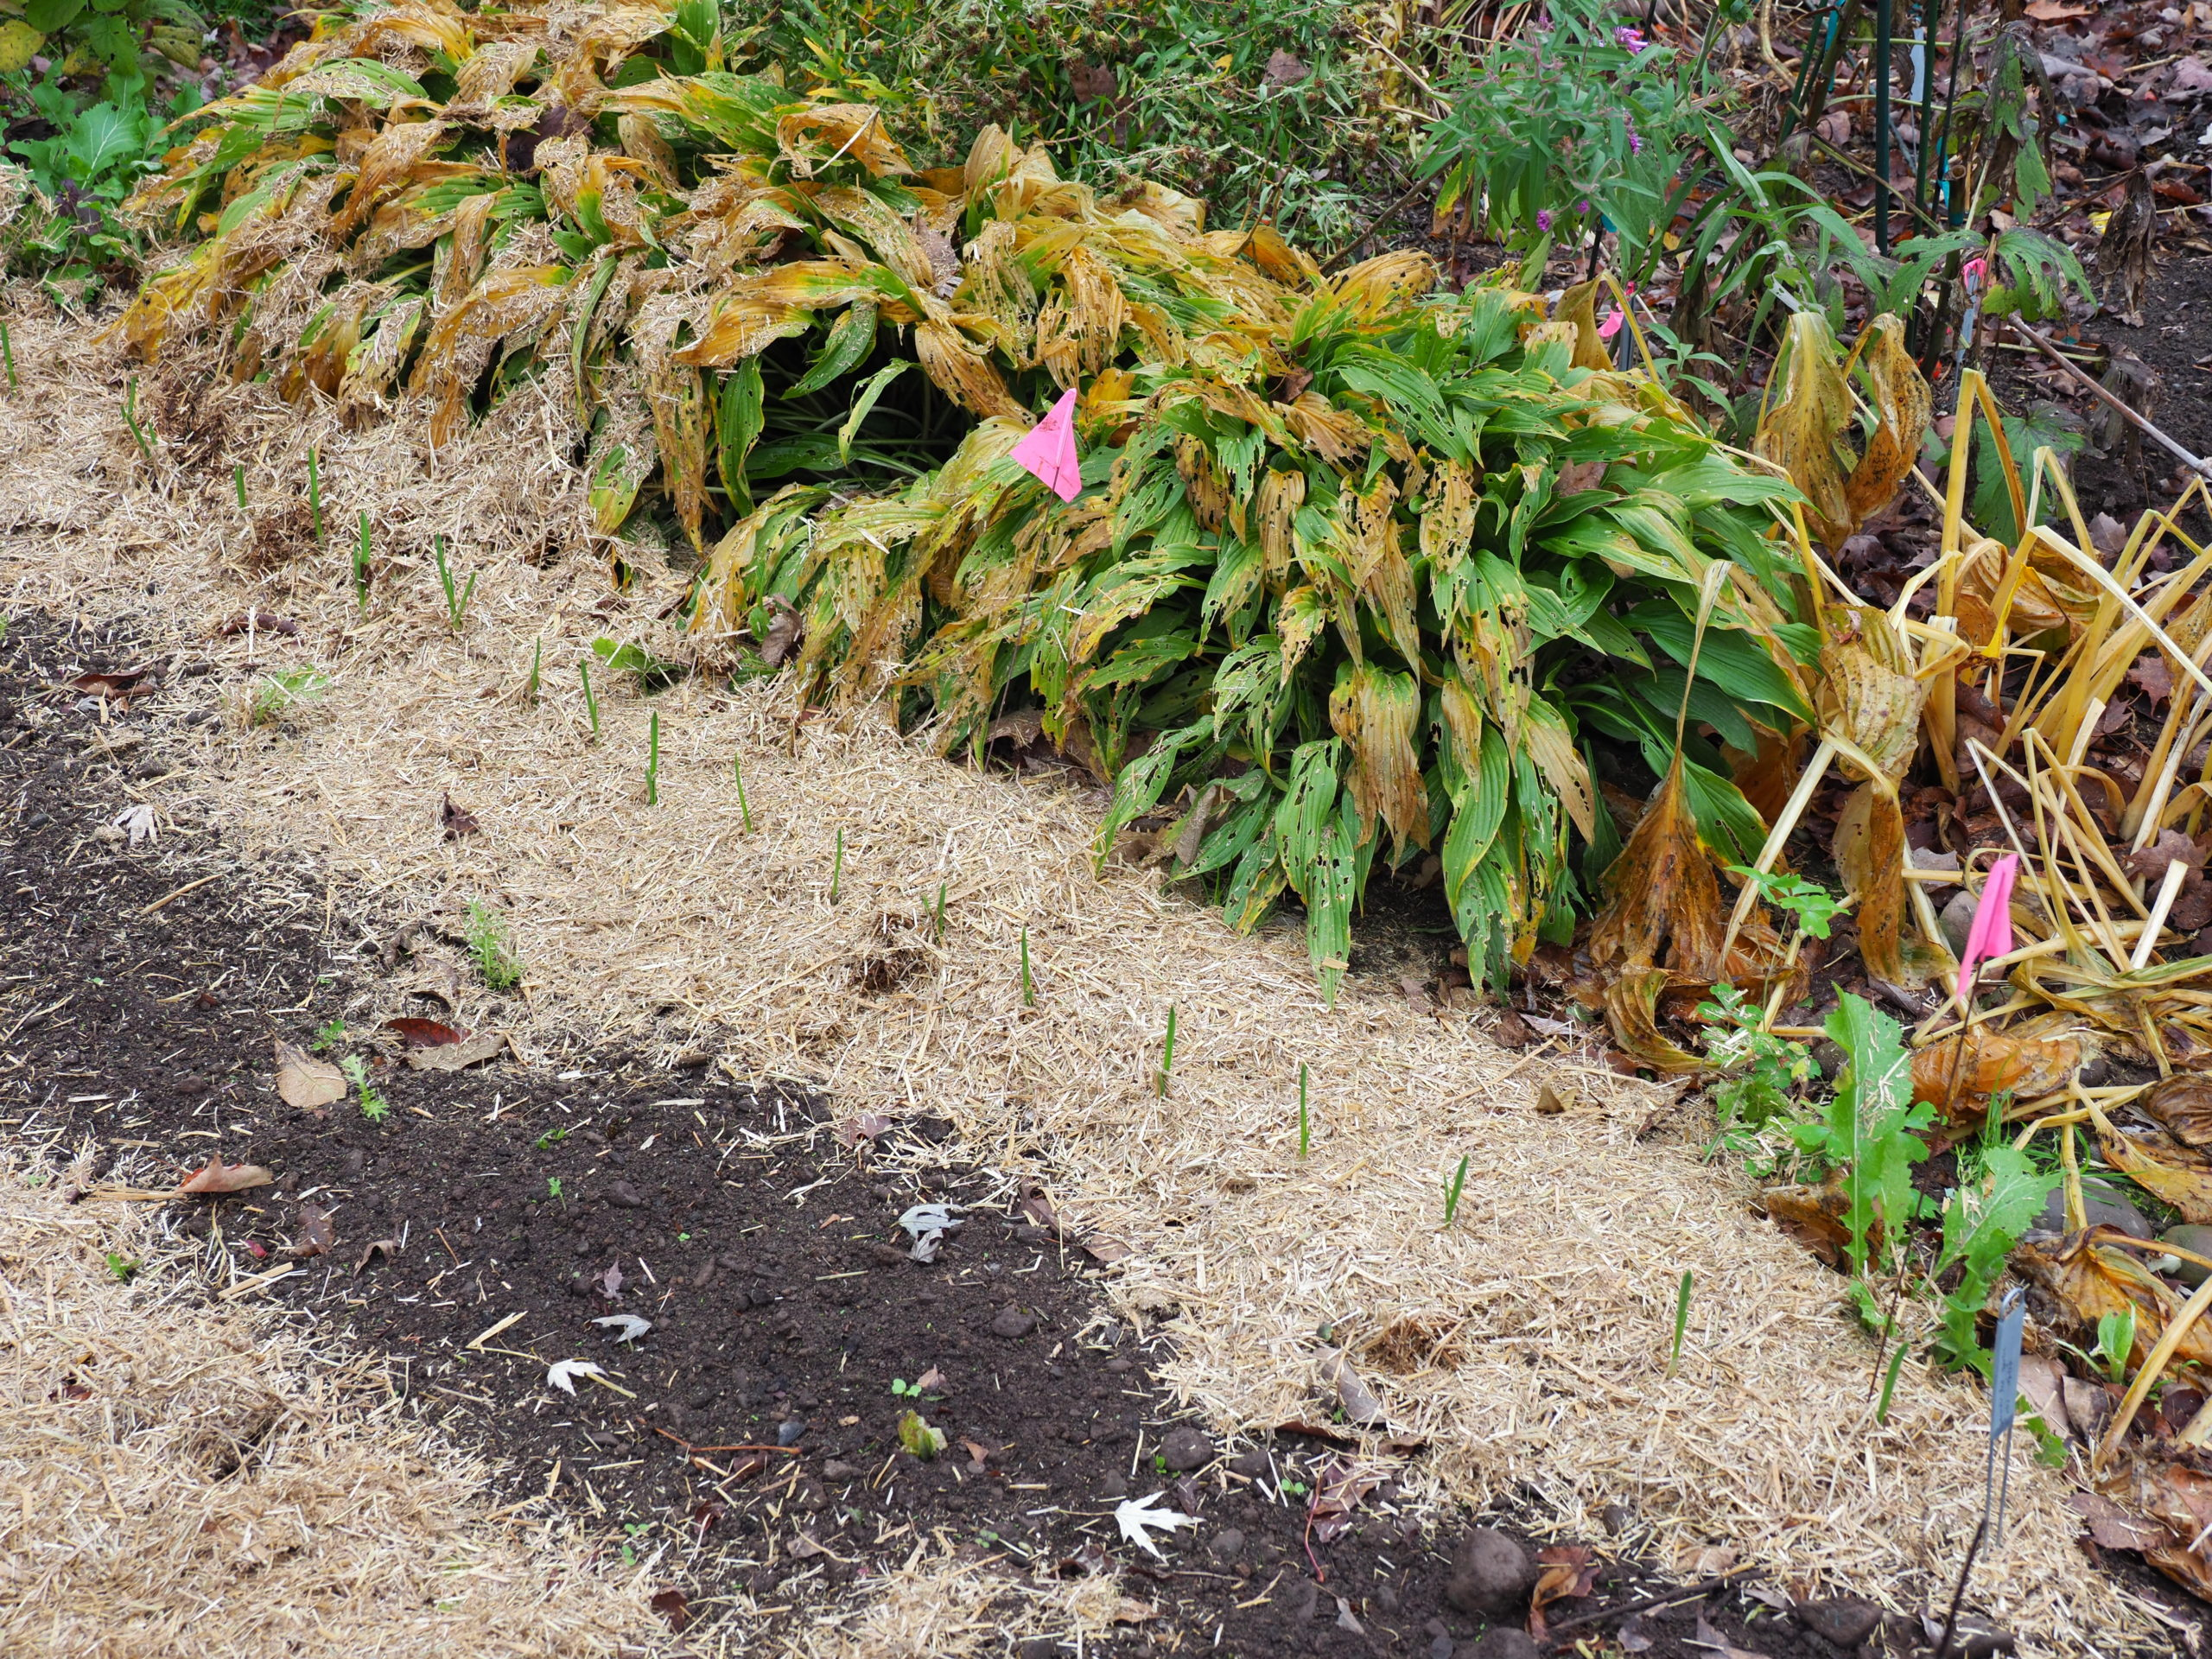 A row of garlic planted on October 10 showed signs of sprouting after a warm spell. With freezing temps weeks later, a light mulch was added. Two weeks later, before the latest freeze, 2 inches of maple leaves were added.